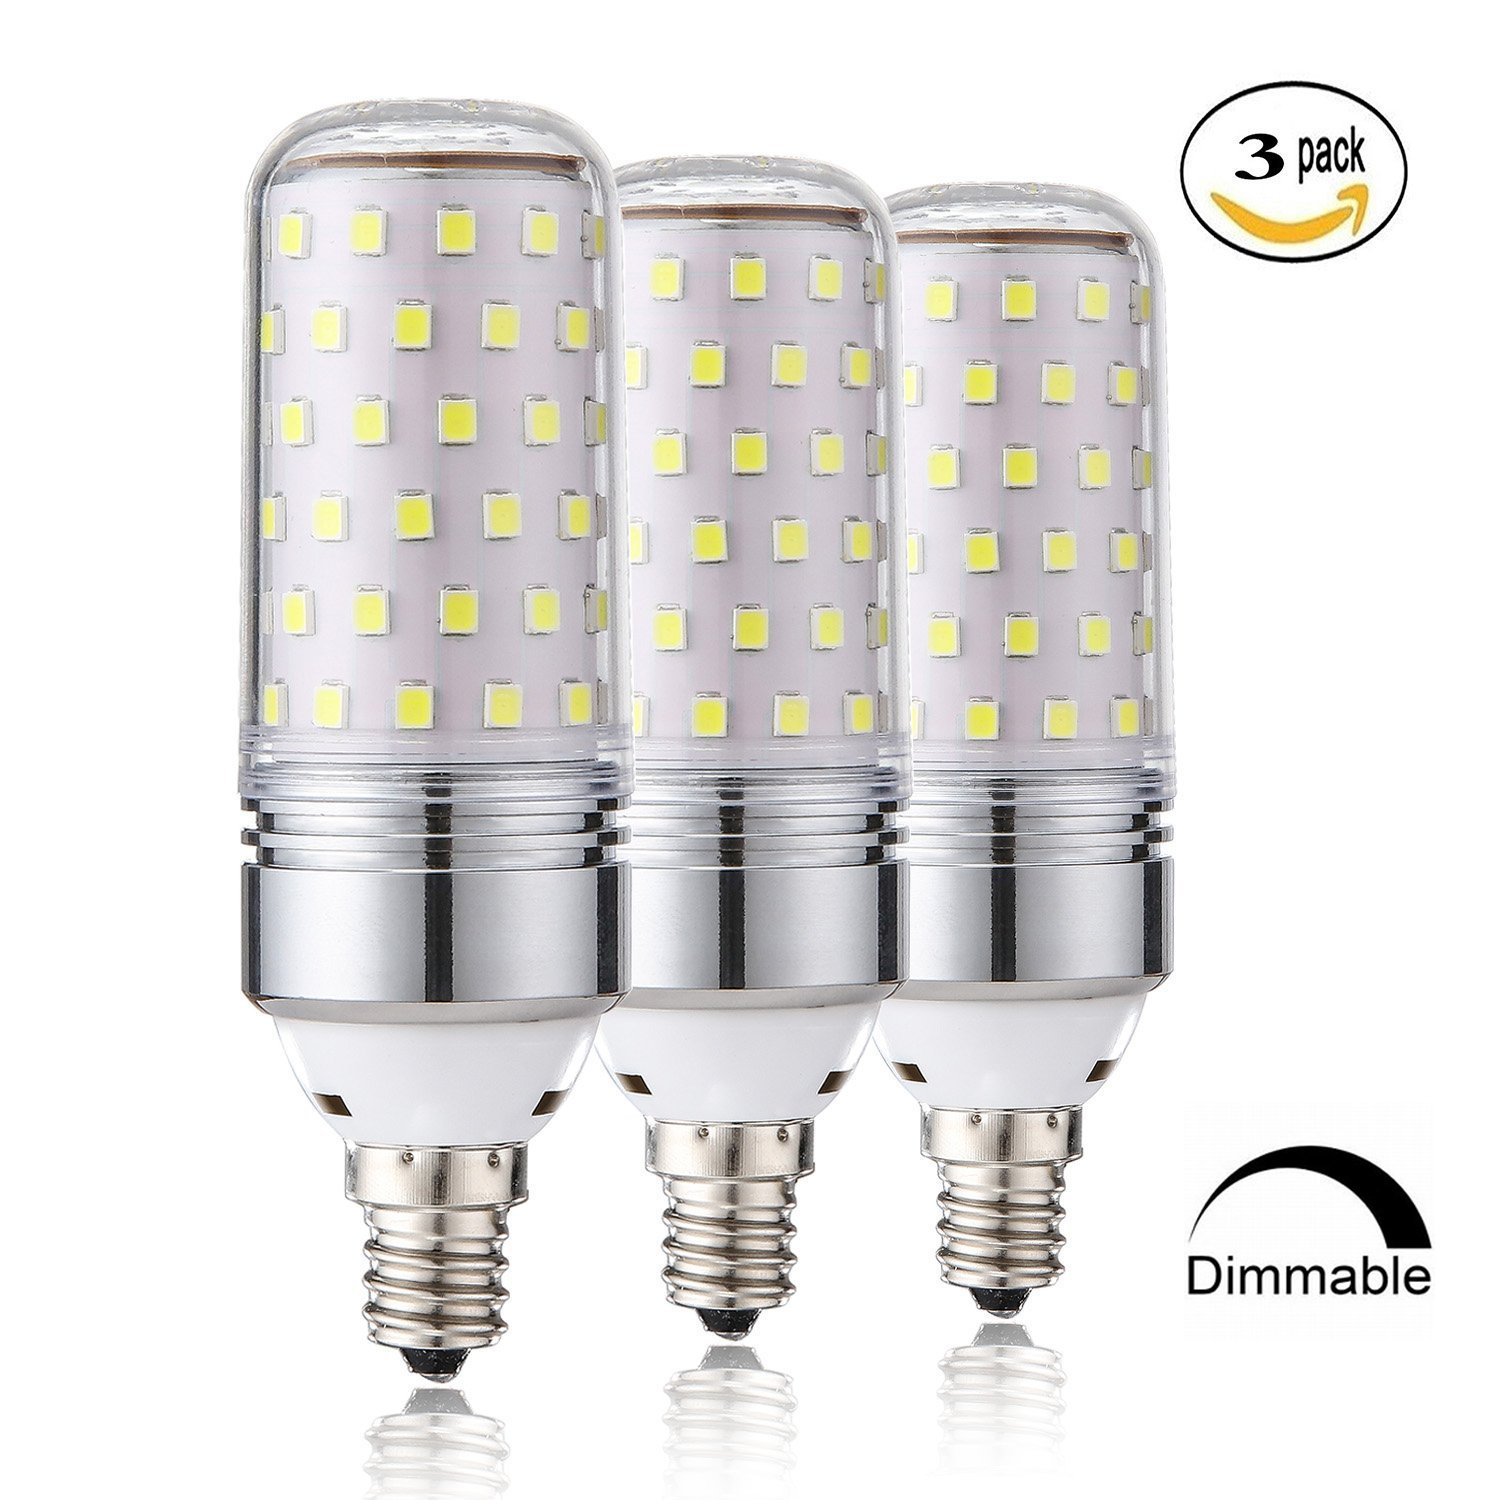 15W Dimmable LED Corn Bulbs,E12 LED Candelabra Light Bulbs 100 Watt Equivalent, 1000lm, Daylight White 6000K LED Chandelier Bulbs, Decorative Candle Base E12 Dimmable LED Lamp, Pack of 3